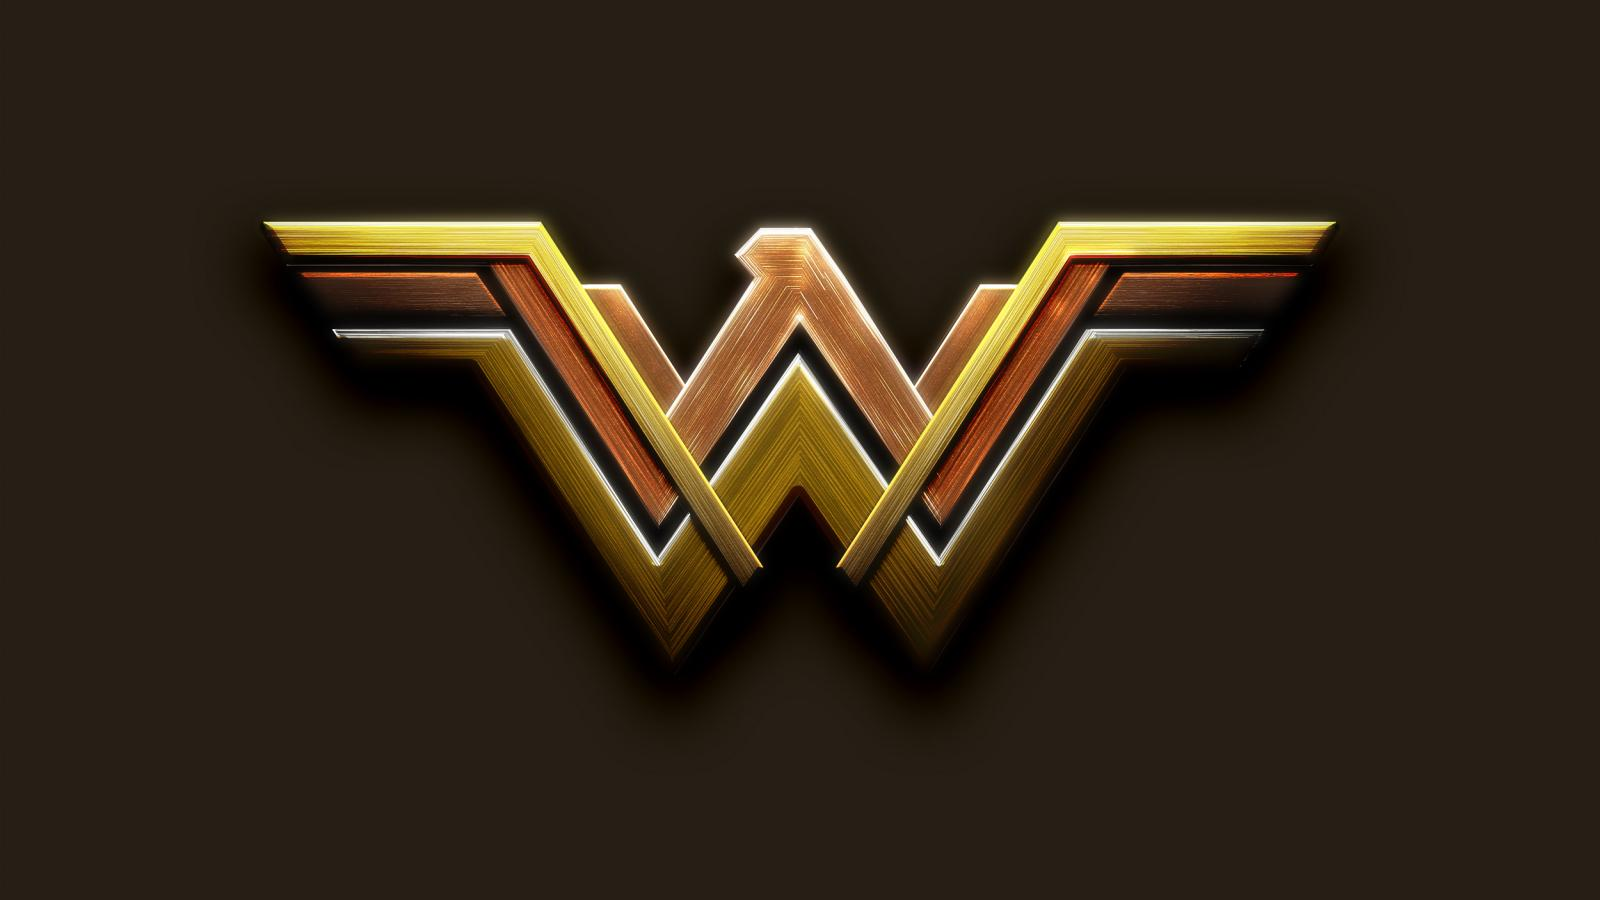 How to Create the Wonder Woman Logo - Photoshop Tutorials